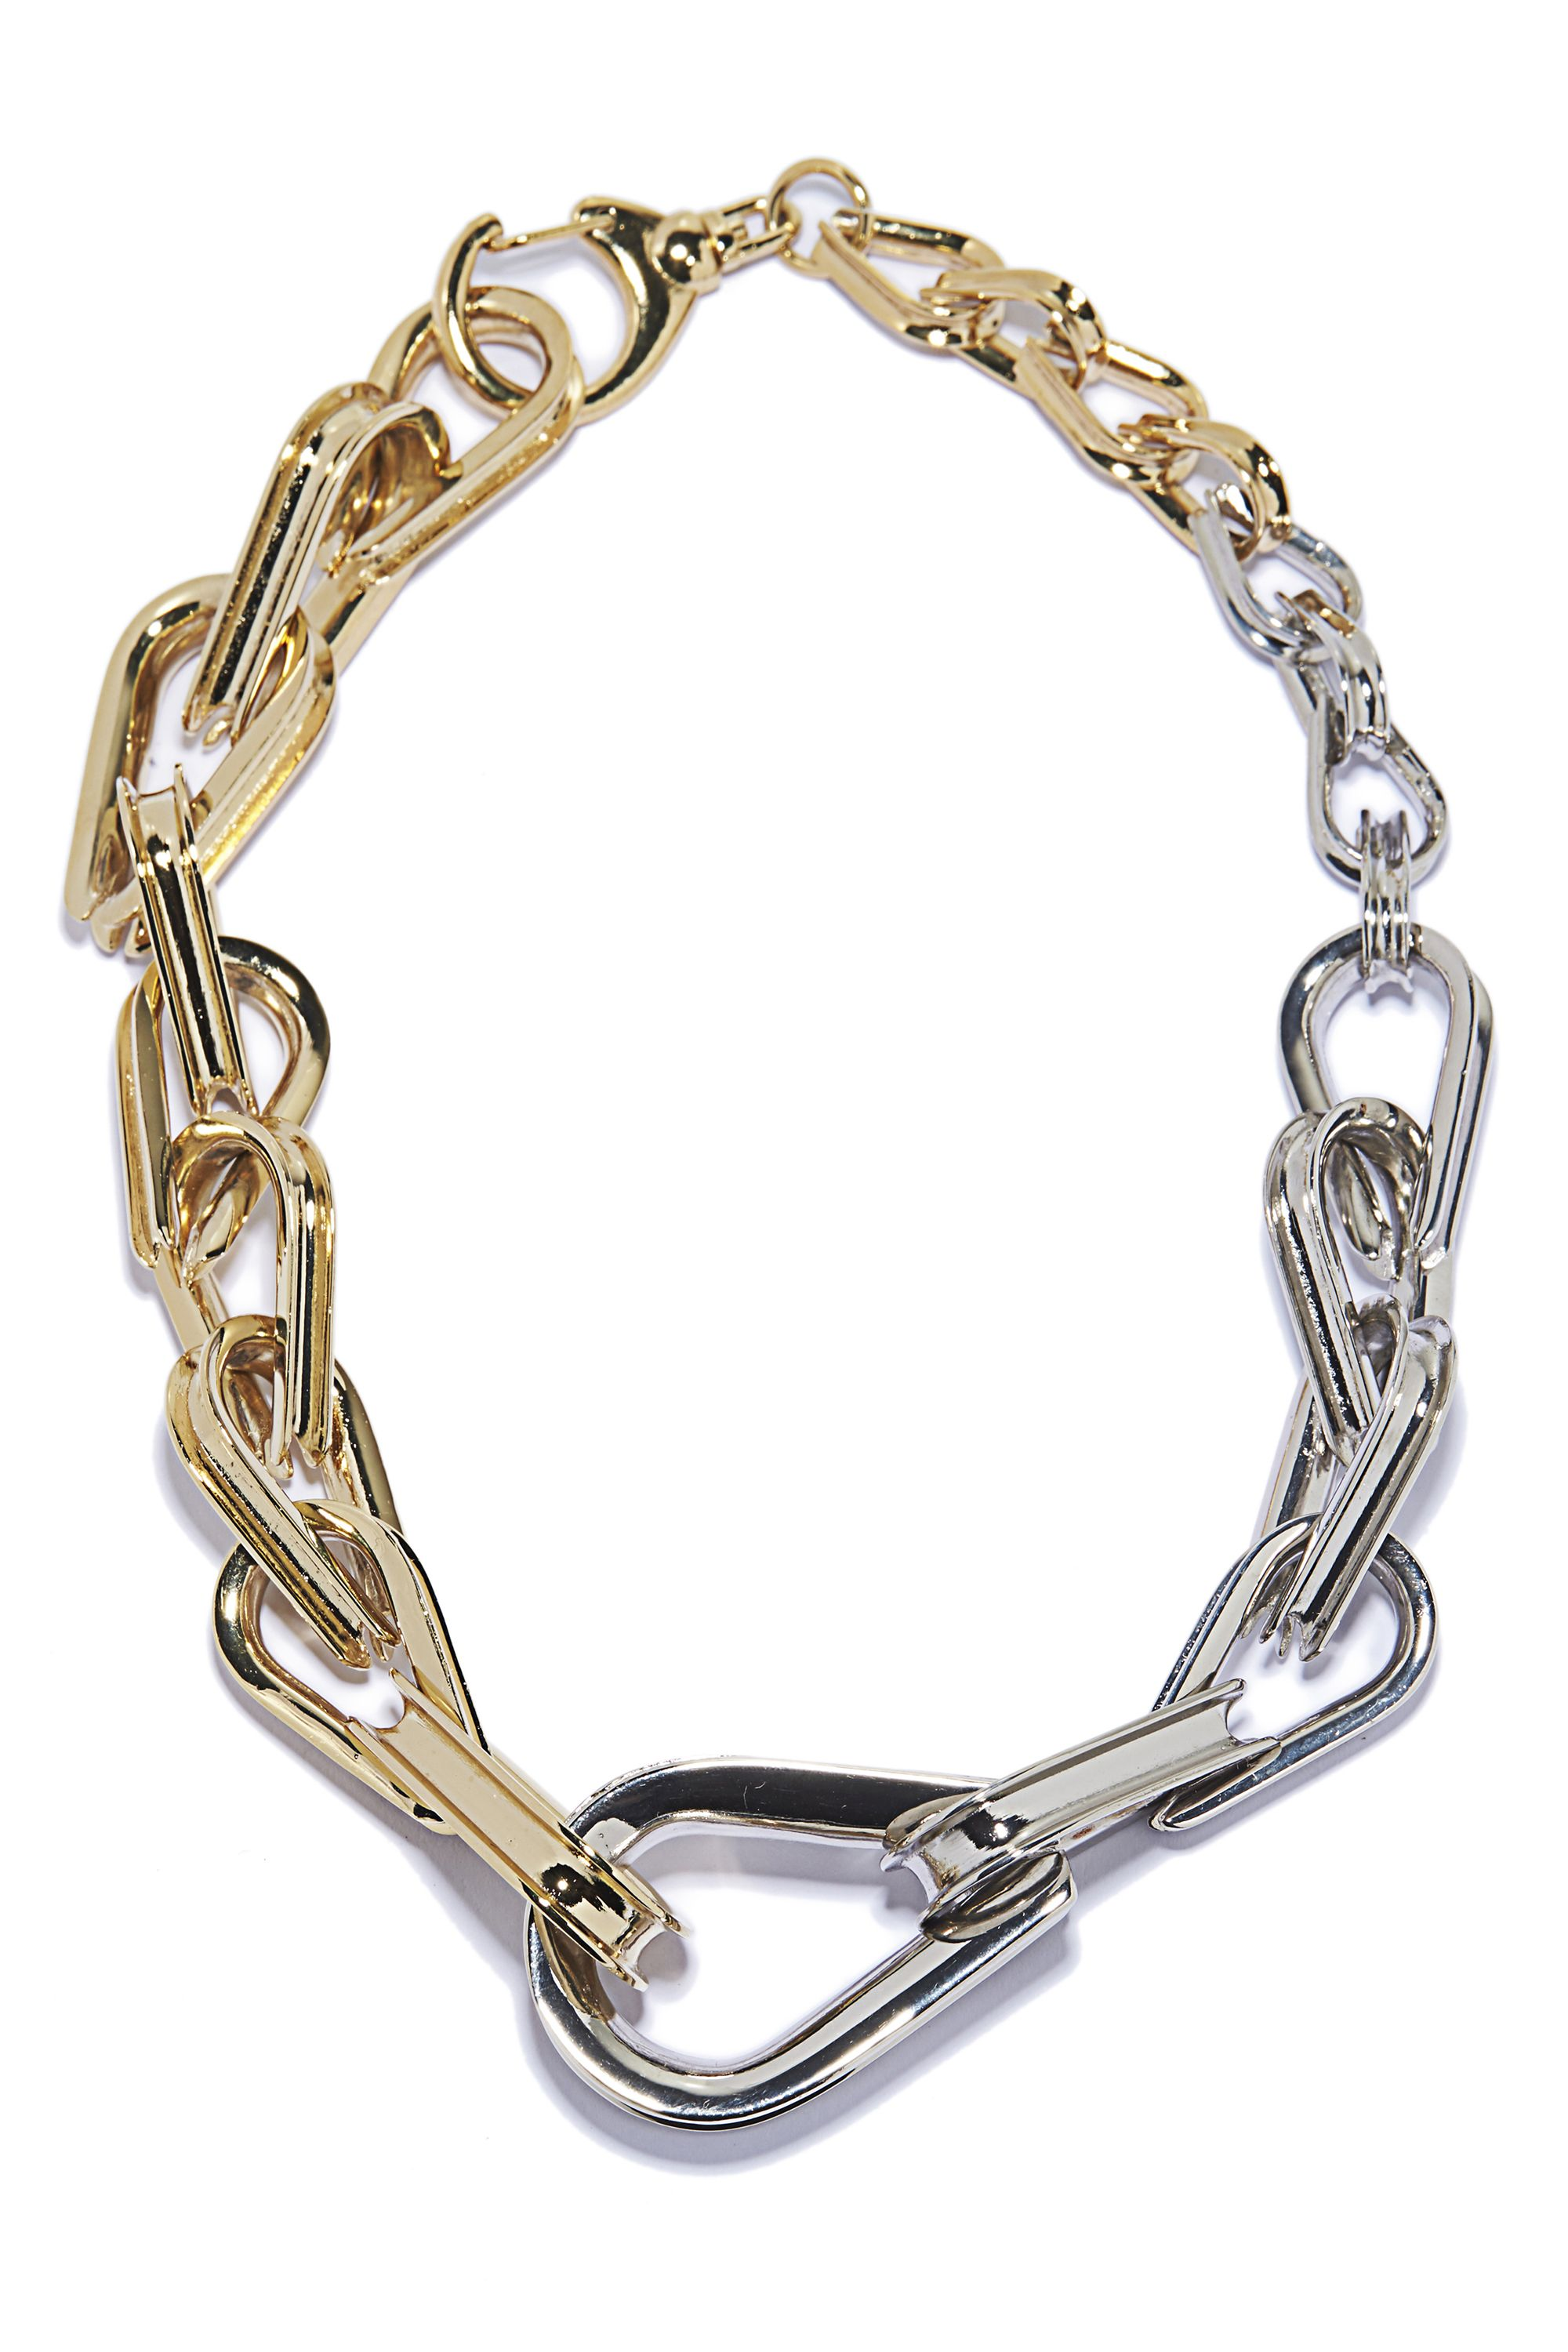 """<p><strong>Annelise Michelson </strong>choker, $995, <a href=""""http://www.annelisemichelson.com/ellipse/chain-choker"""" target=""""_blank"""">annelisemichelson.com</a>. </p>"""